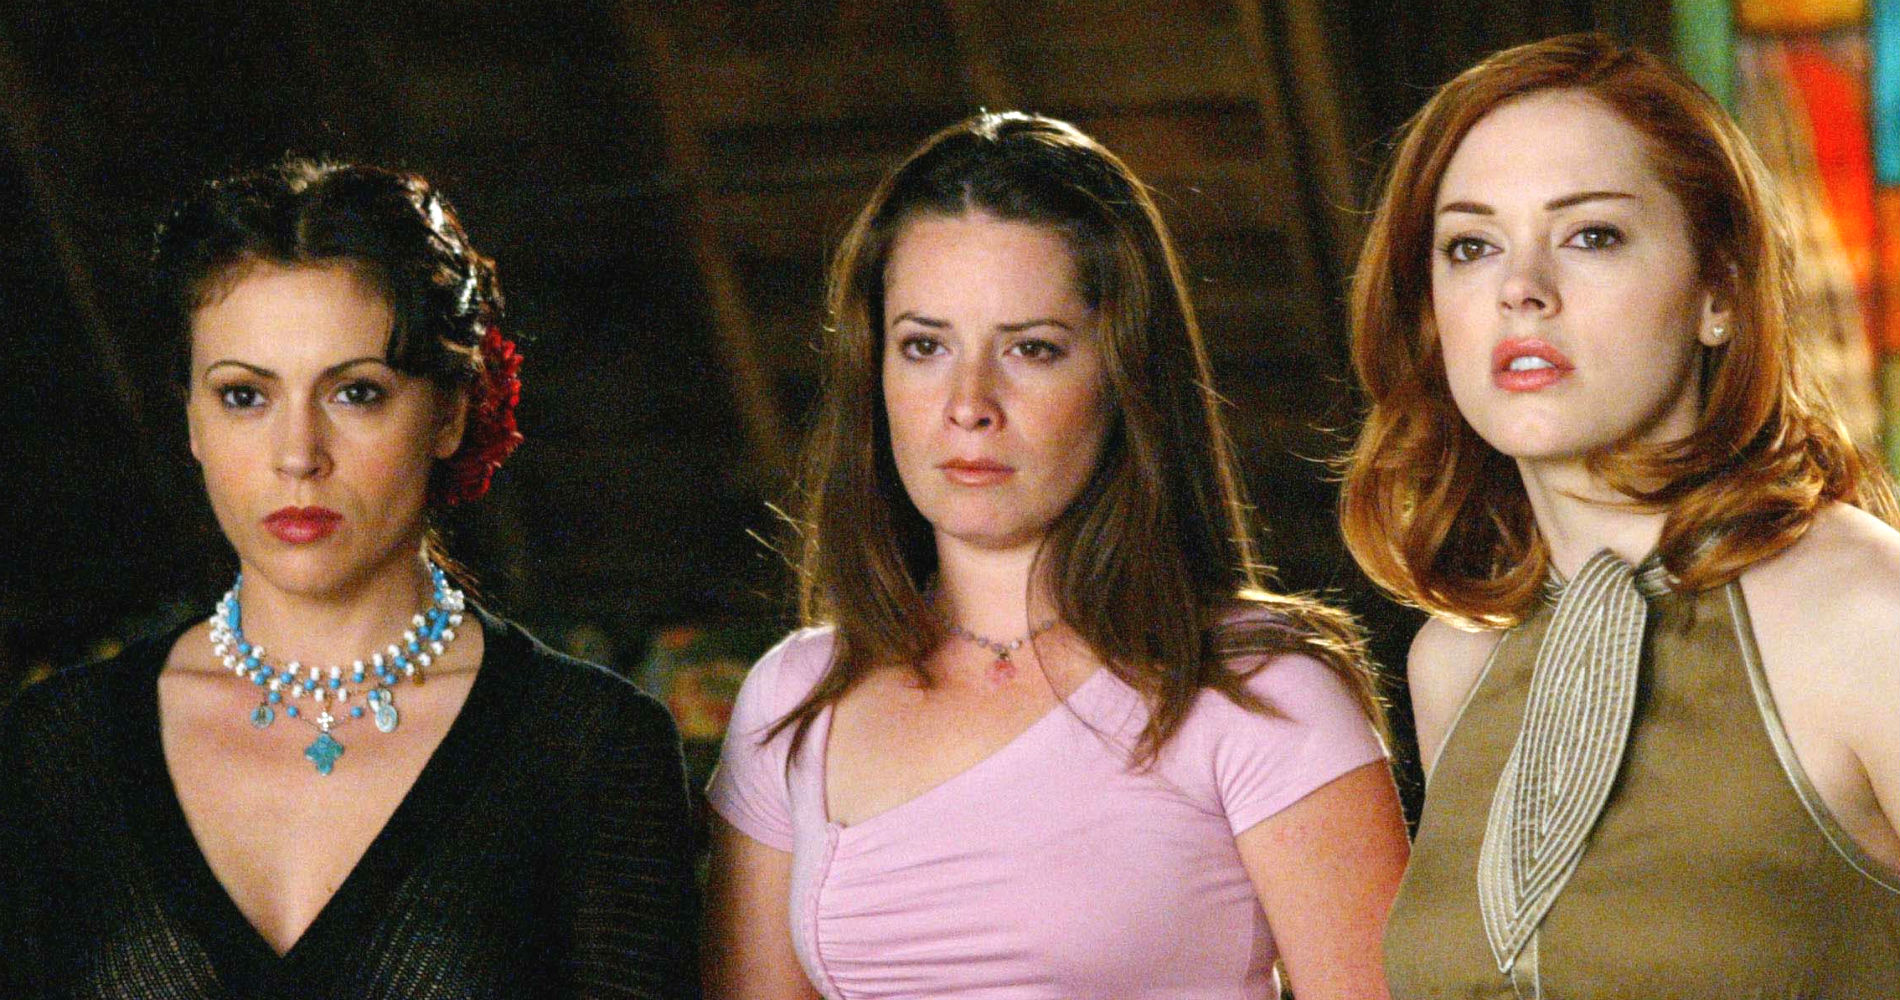 charmed, witch, witches, tv, hero, hs